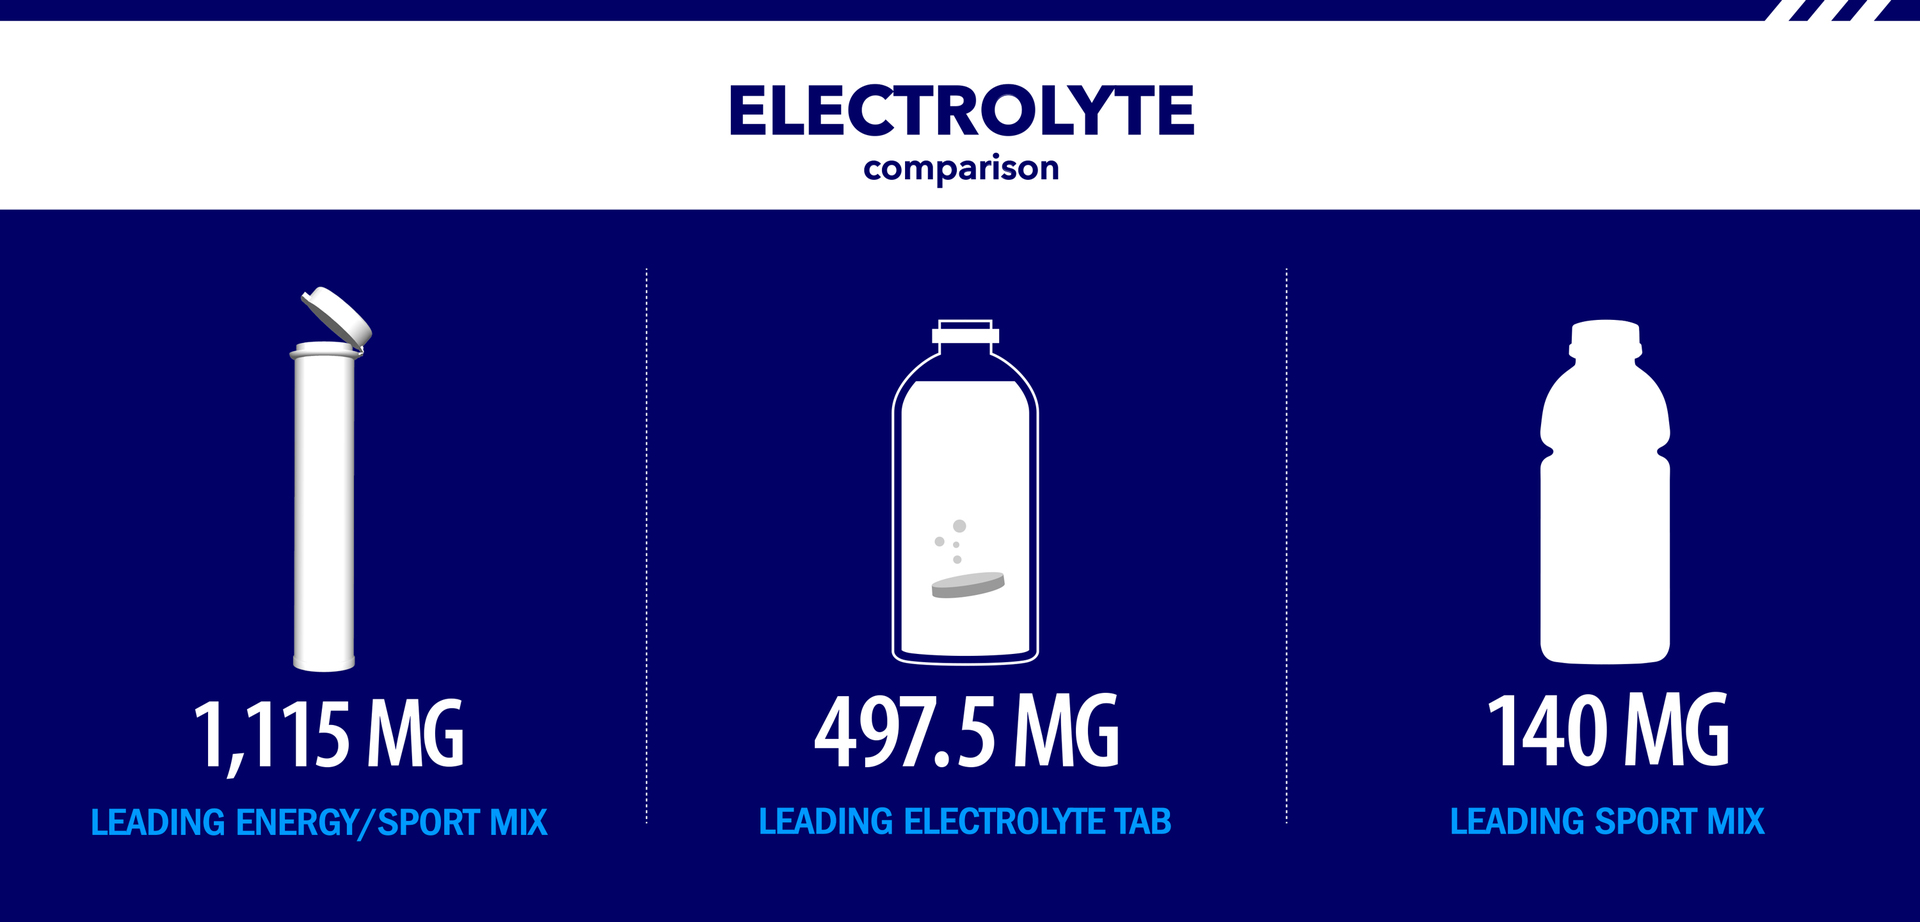 Zipfizz® Electrolyte Comparison